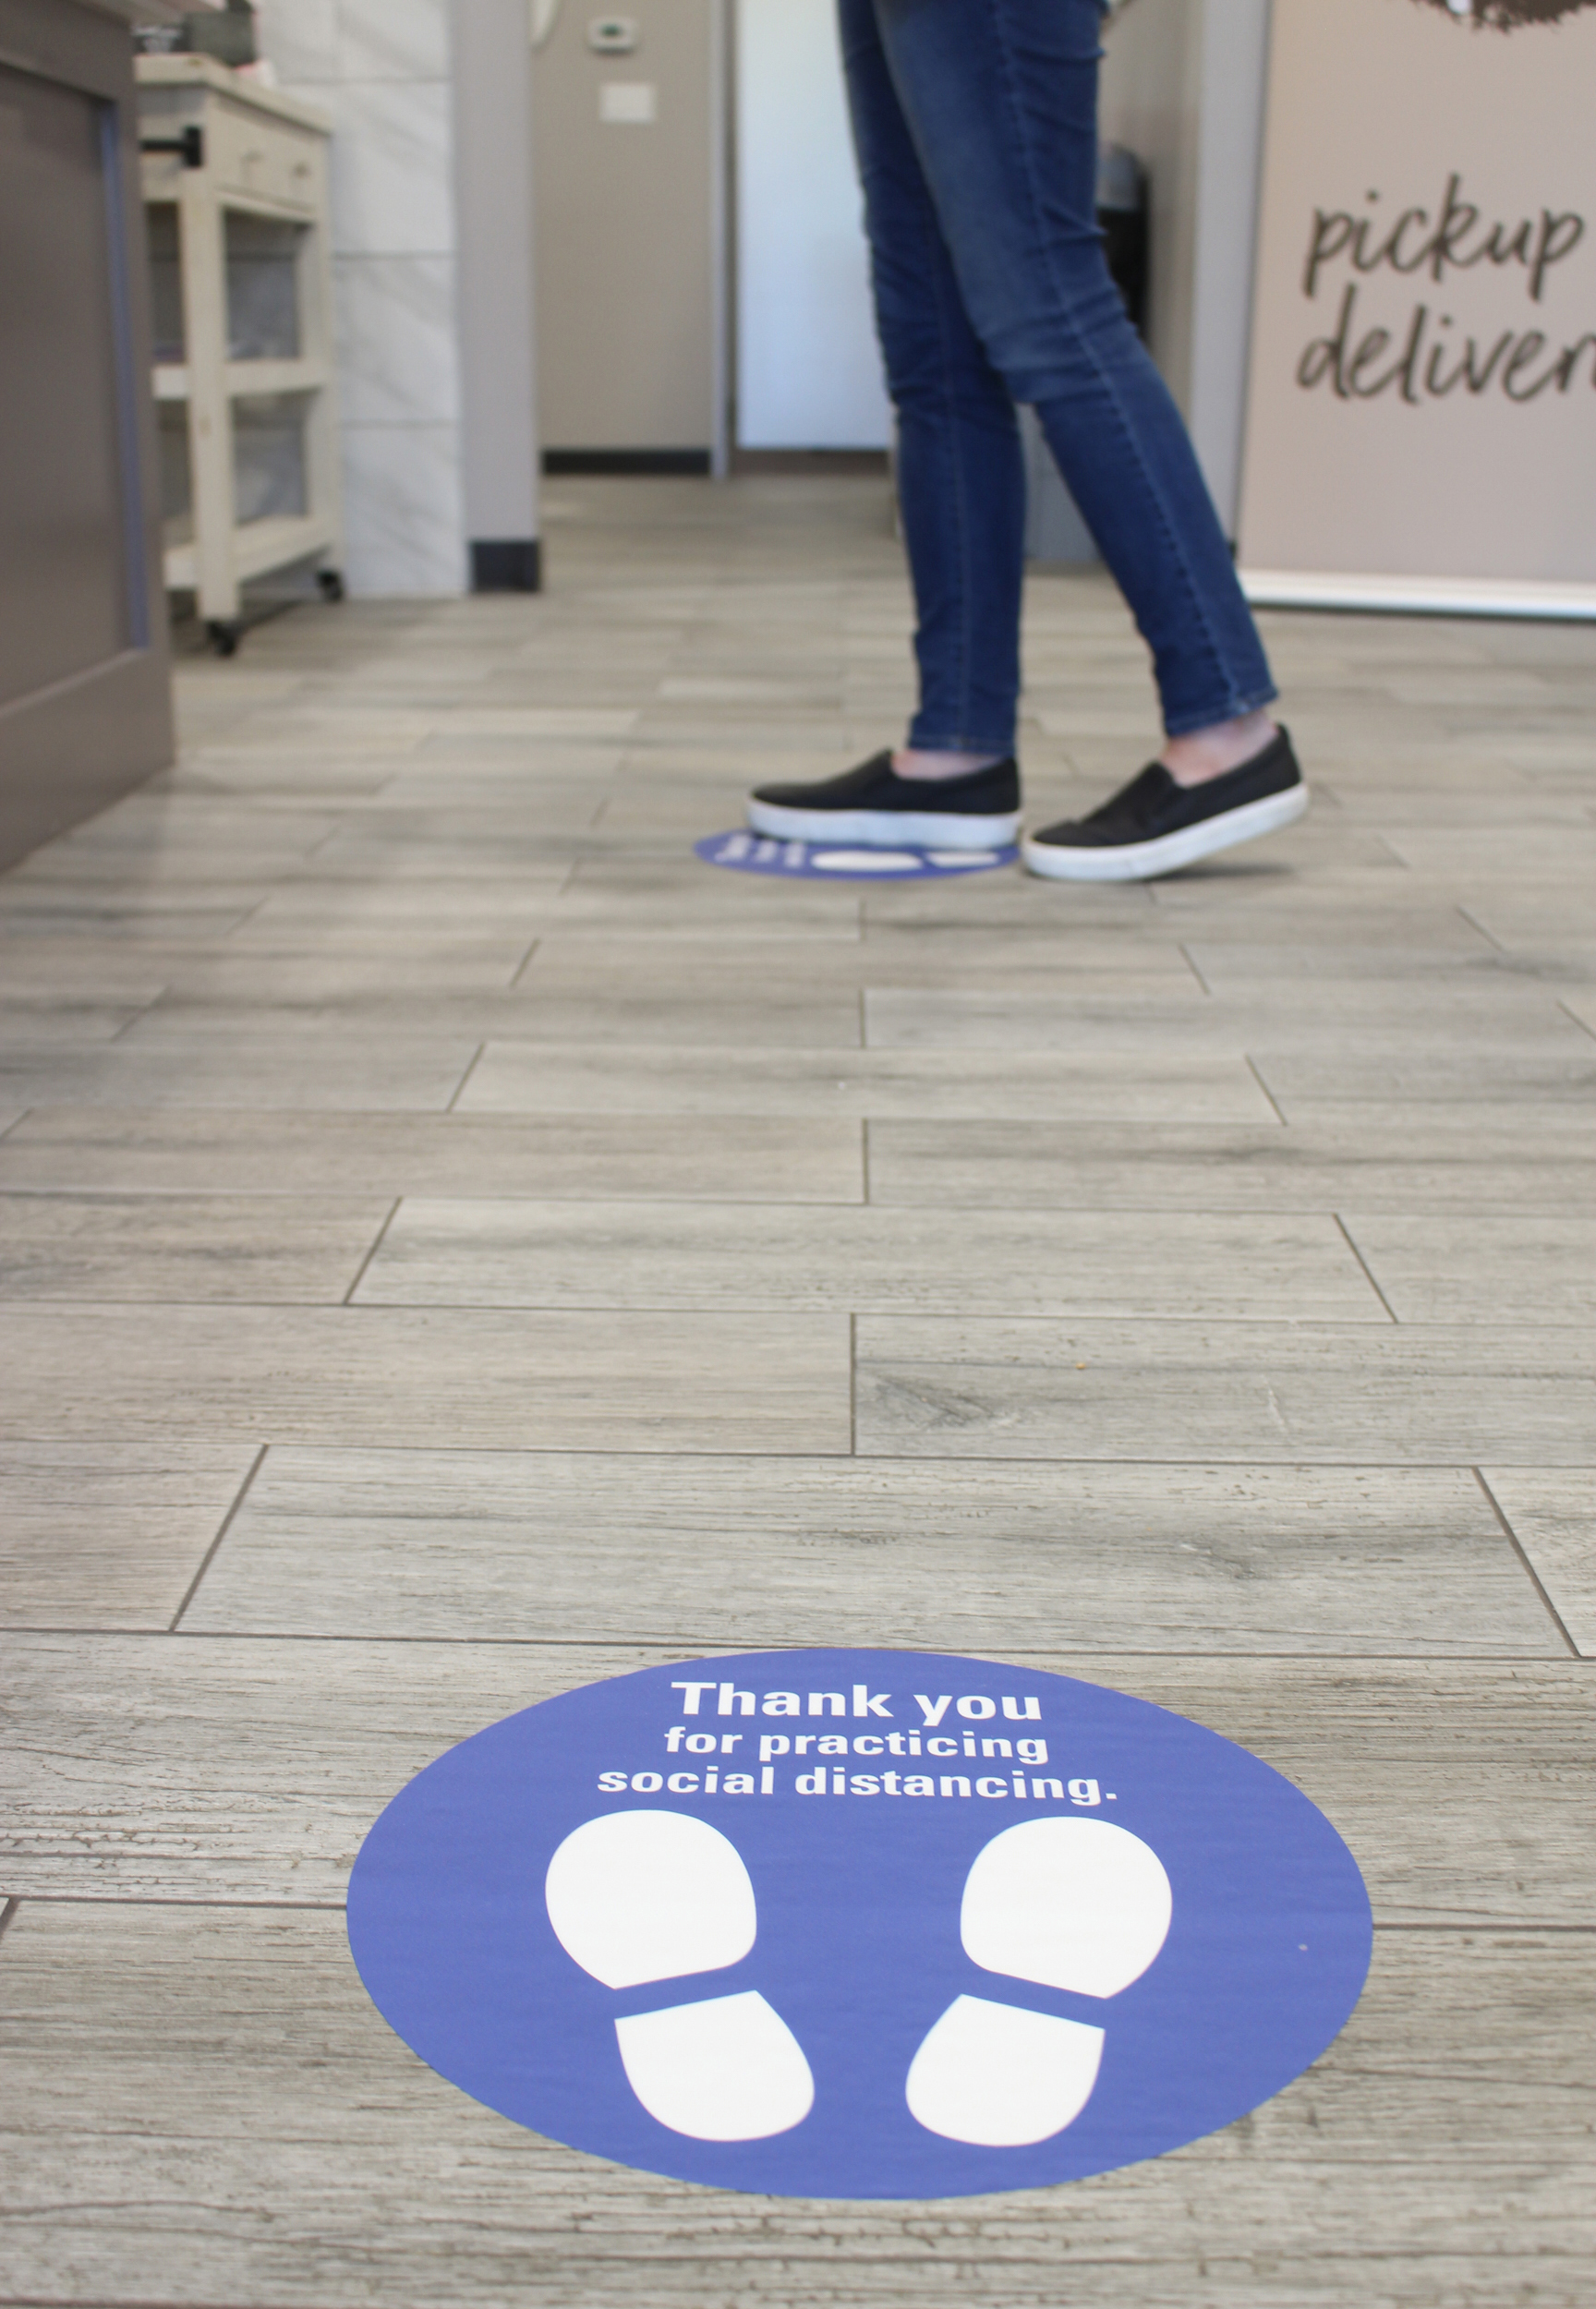 FedEx Office offers custom floor graphics/decals to communicate social distancing directions, direct customer flow and more.